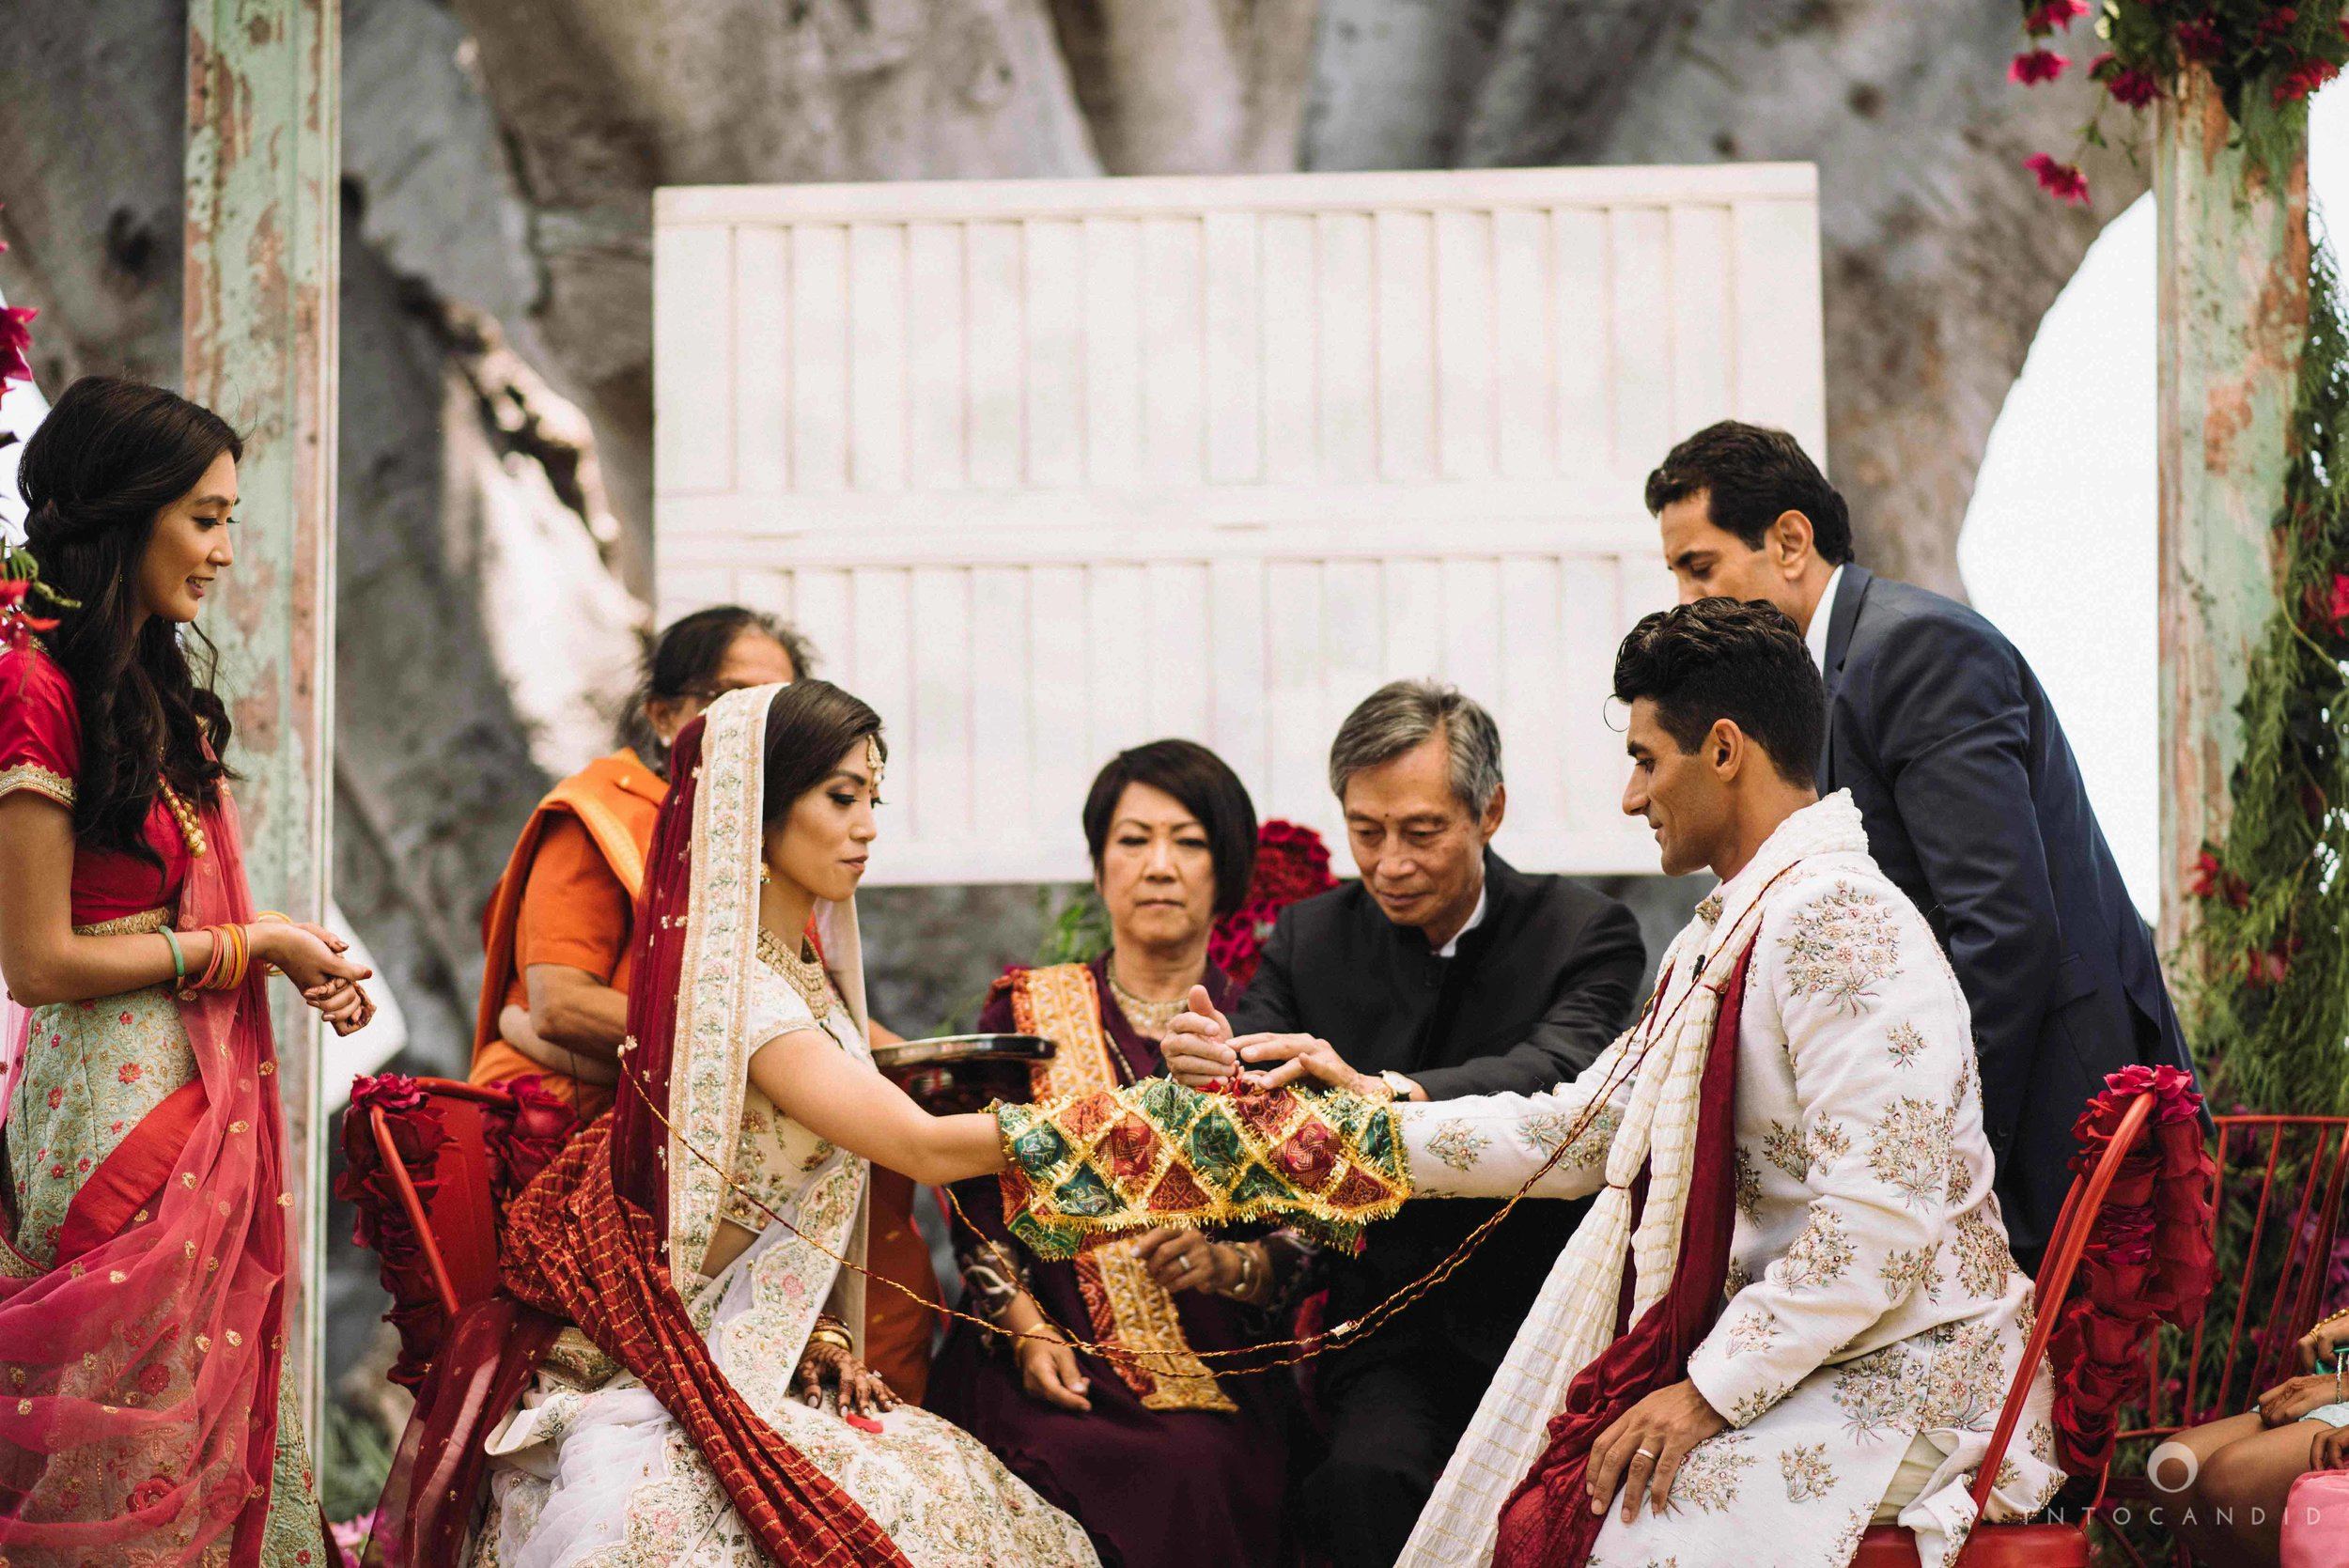 LosAngeles_Indian_Wedding_Photographer_AS_097.jpg